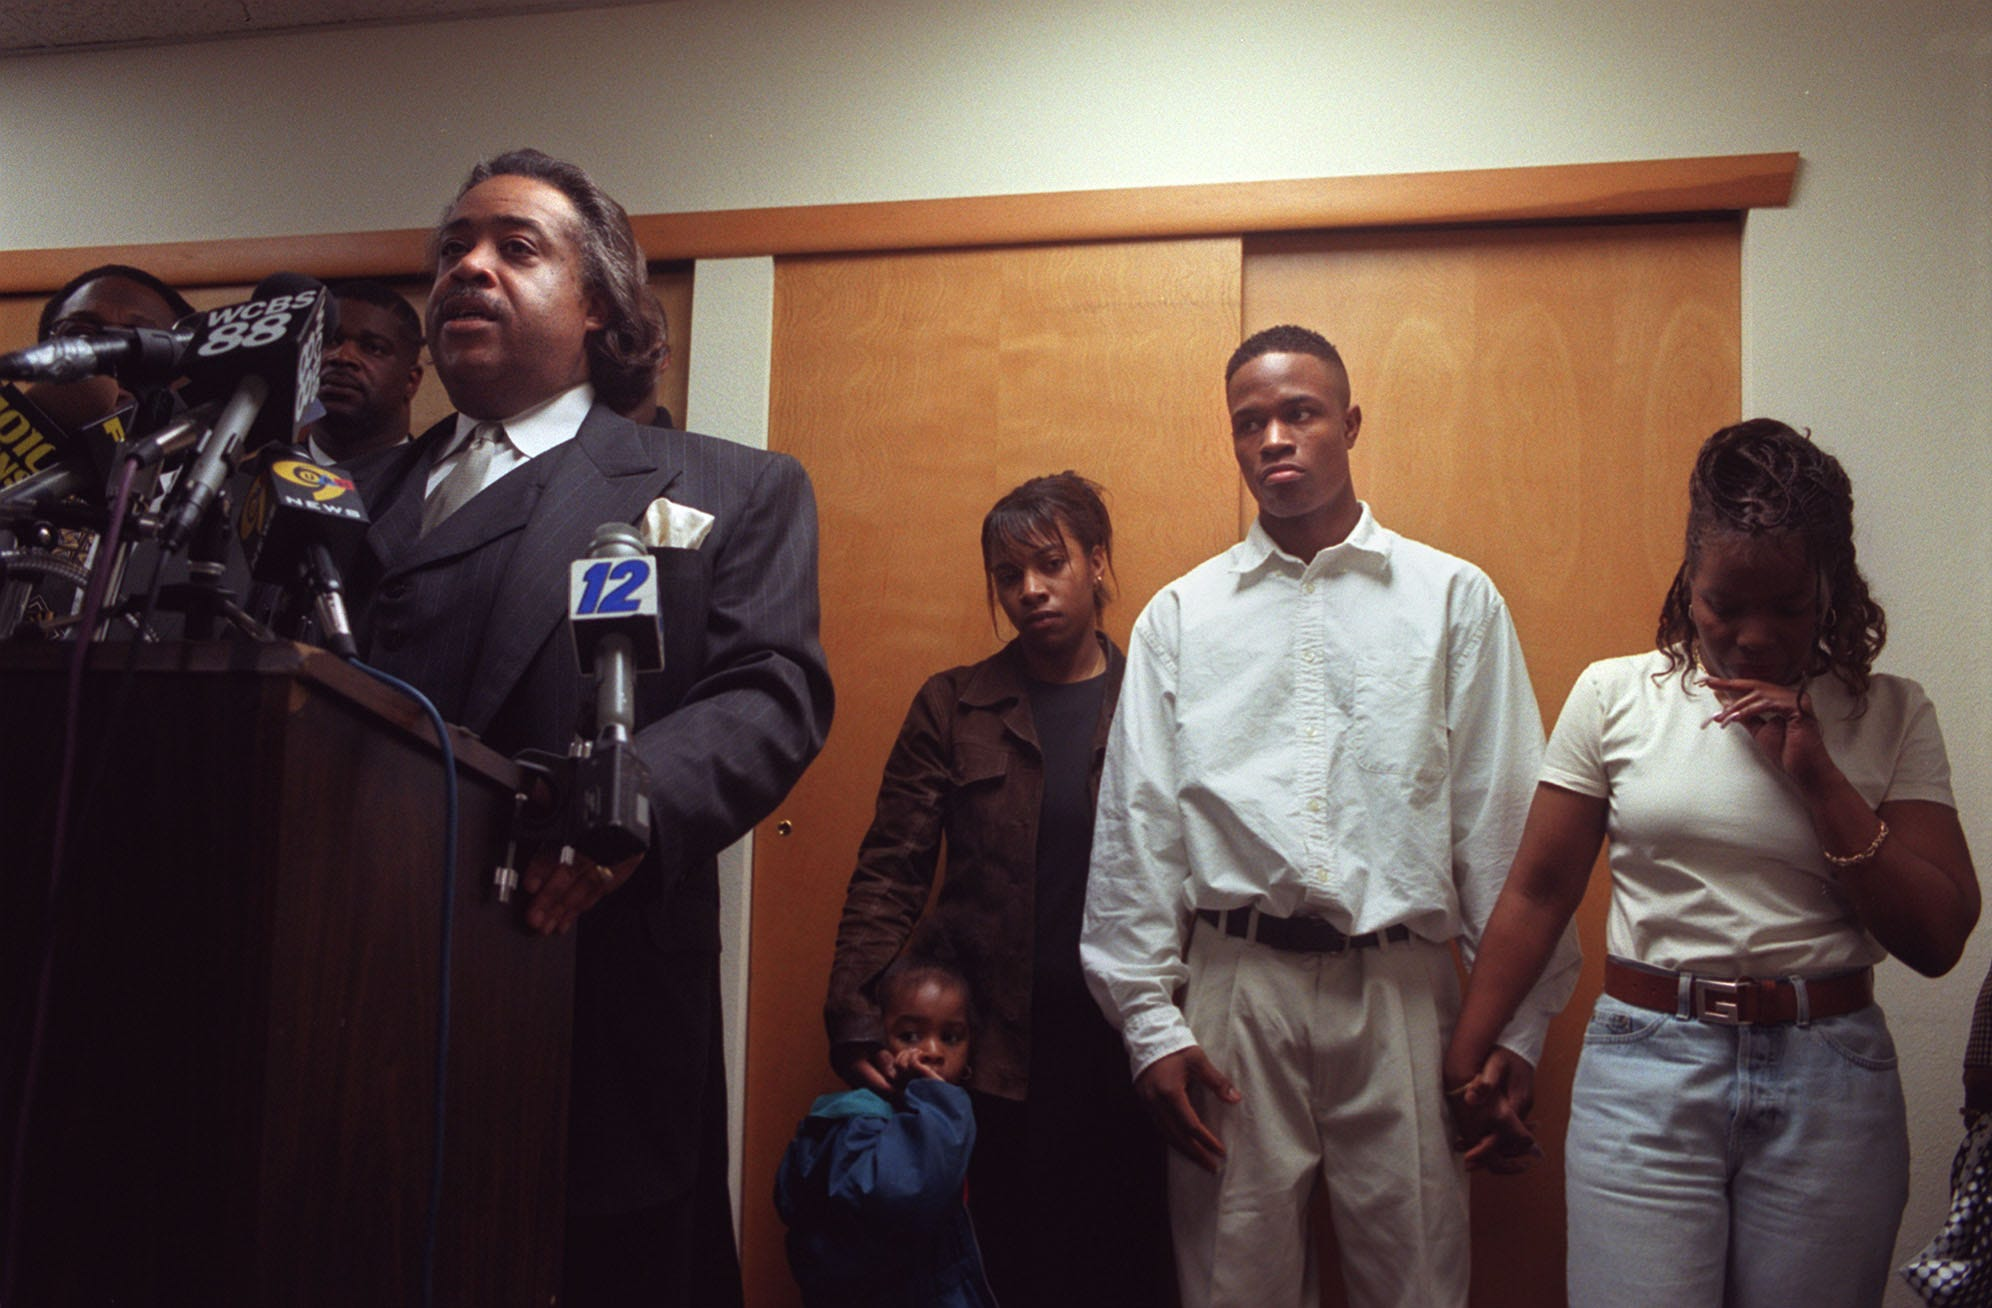 Keshon Lamonte Moore, 22, stands with family at his sides as Rev. Al Sharpton speaks during a press conference at Abyssinian Baptist Church, in Newark, Sunday, April 26, 1998.